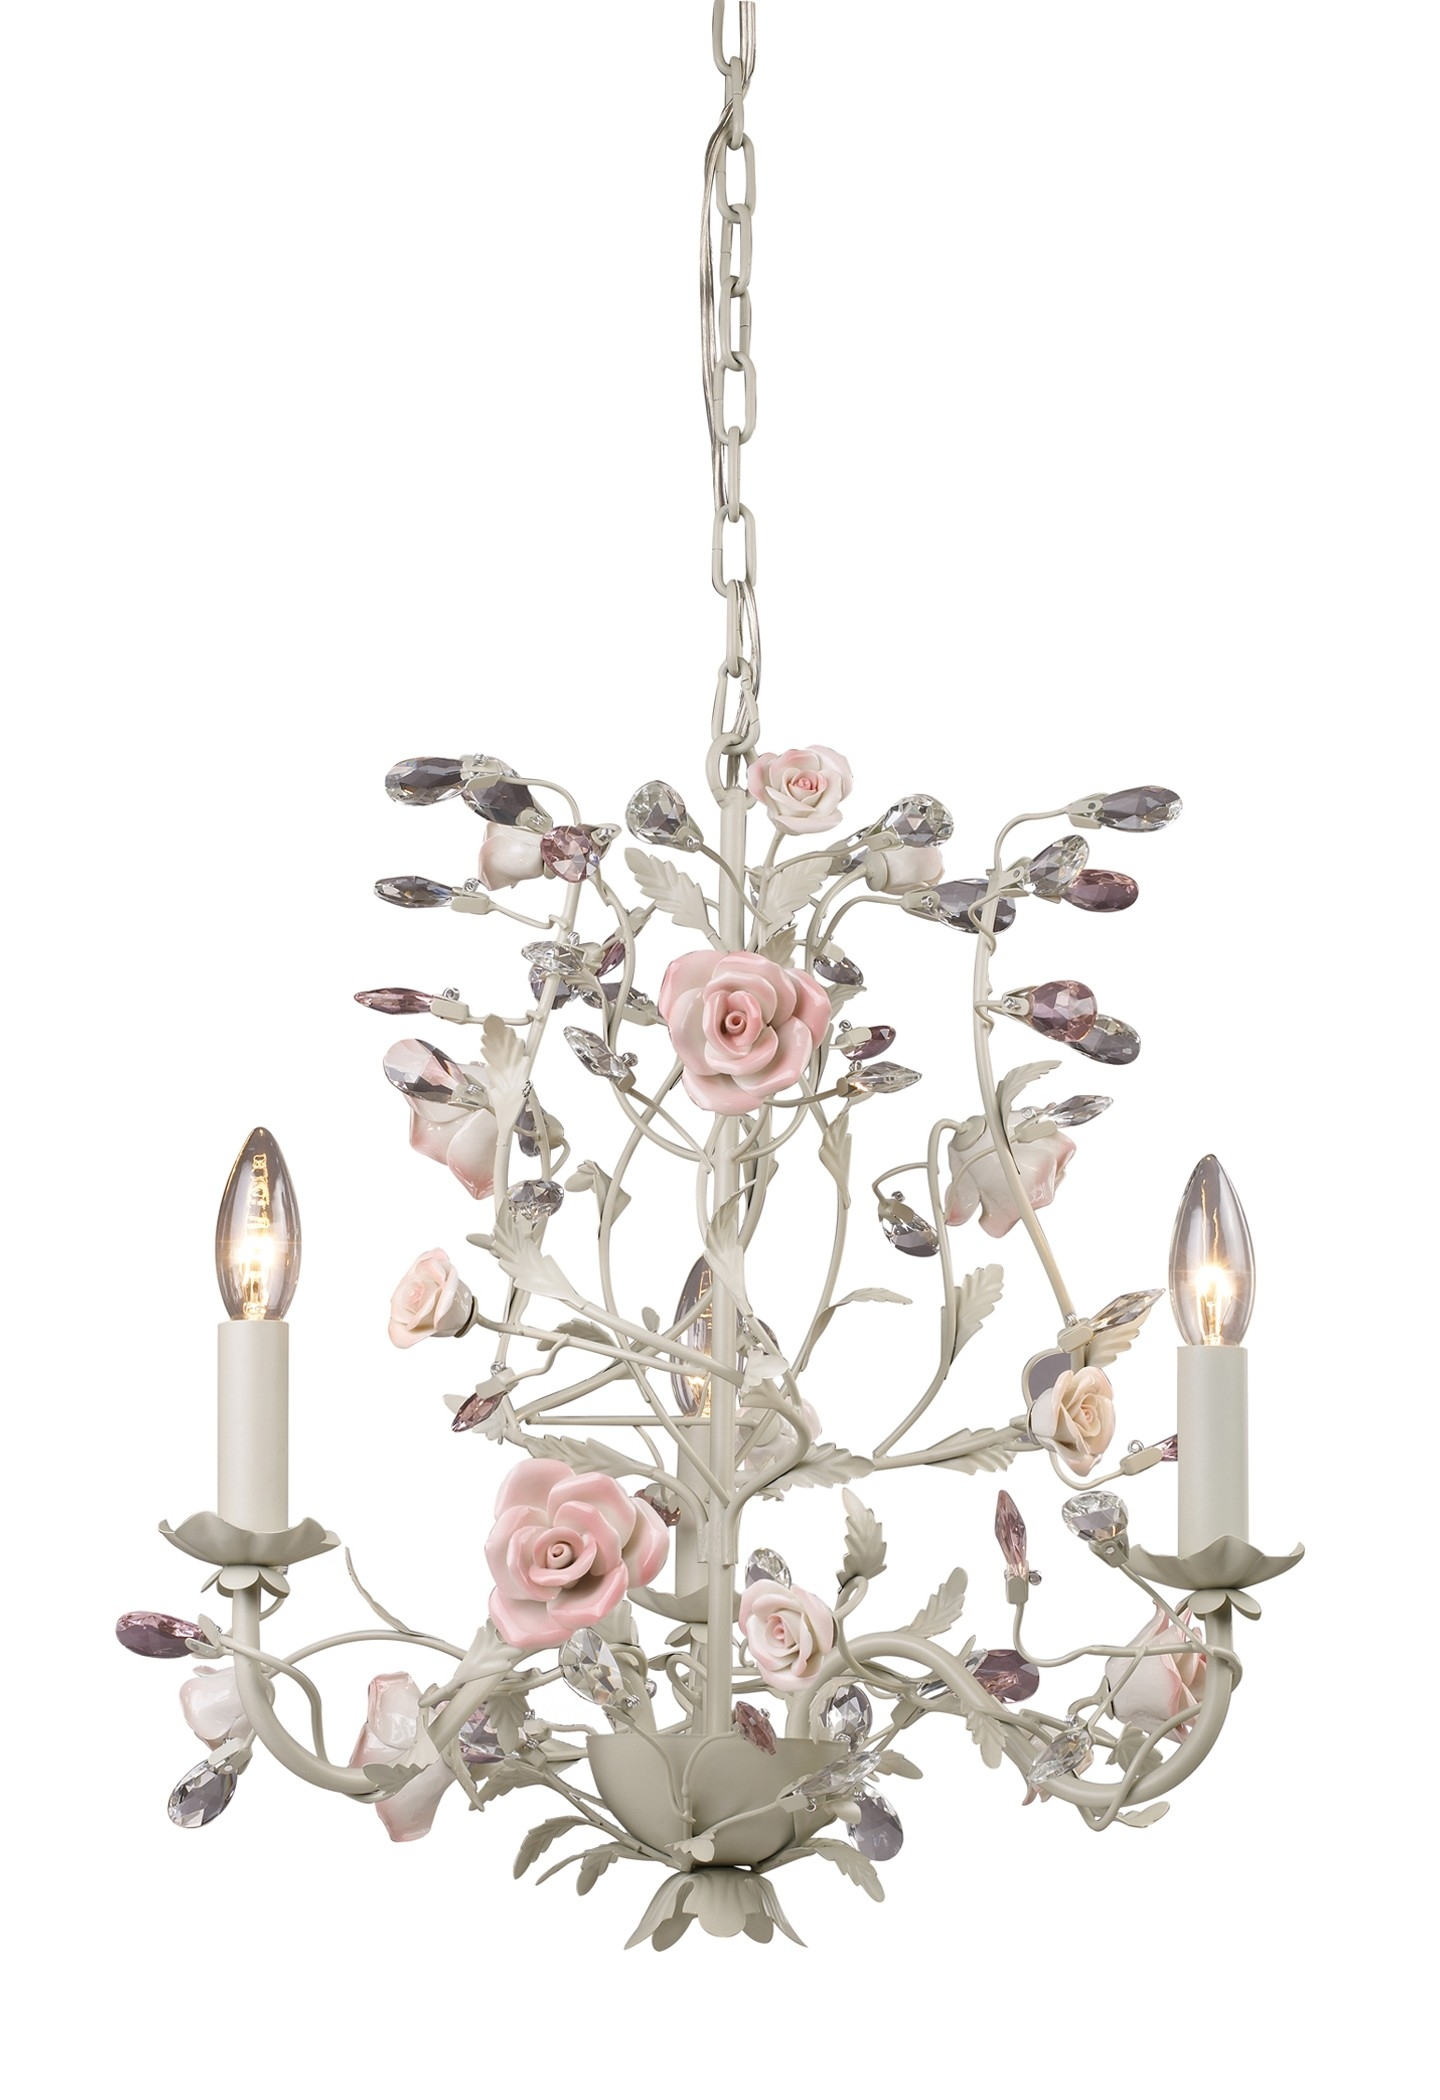 Light Flower Chandelier Would Love This For My Office With Cream Crystal Chandelier (View 10 of 15)